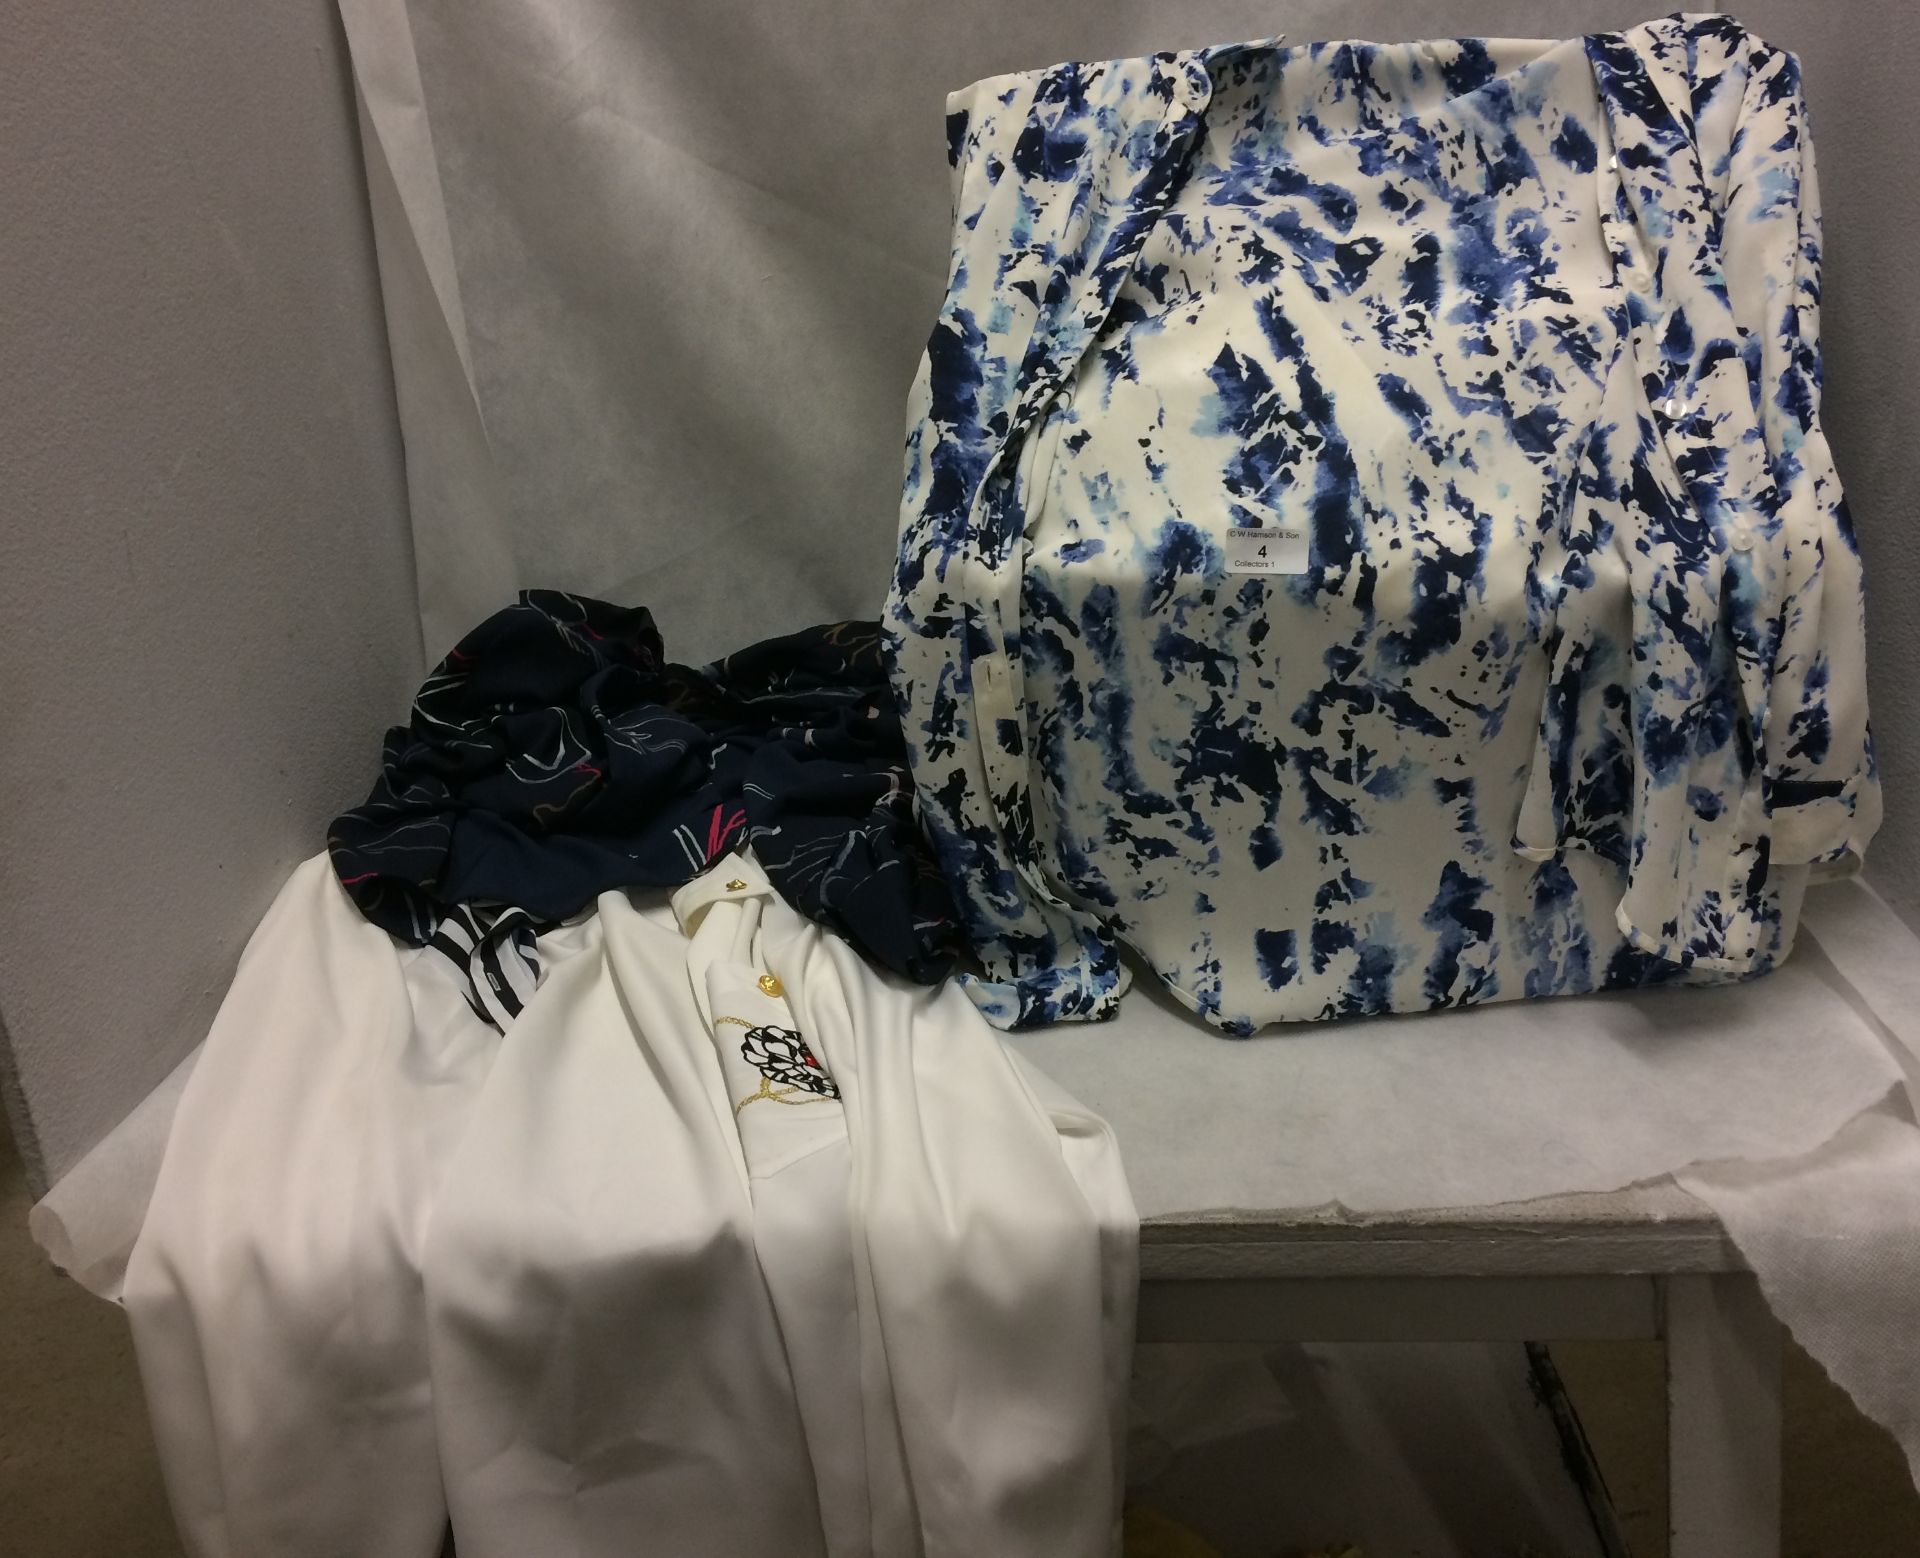 Contents to box - 20 x ladies blouses sizes 16 - 20 by M & S and Autograph (clean but now new)